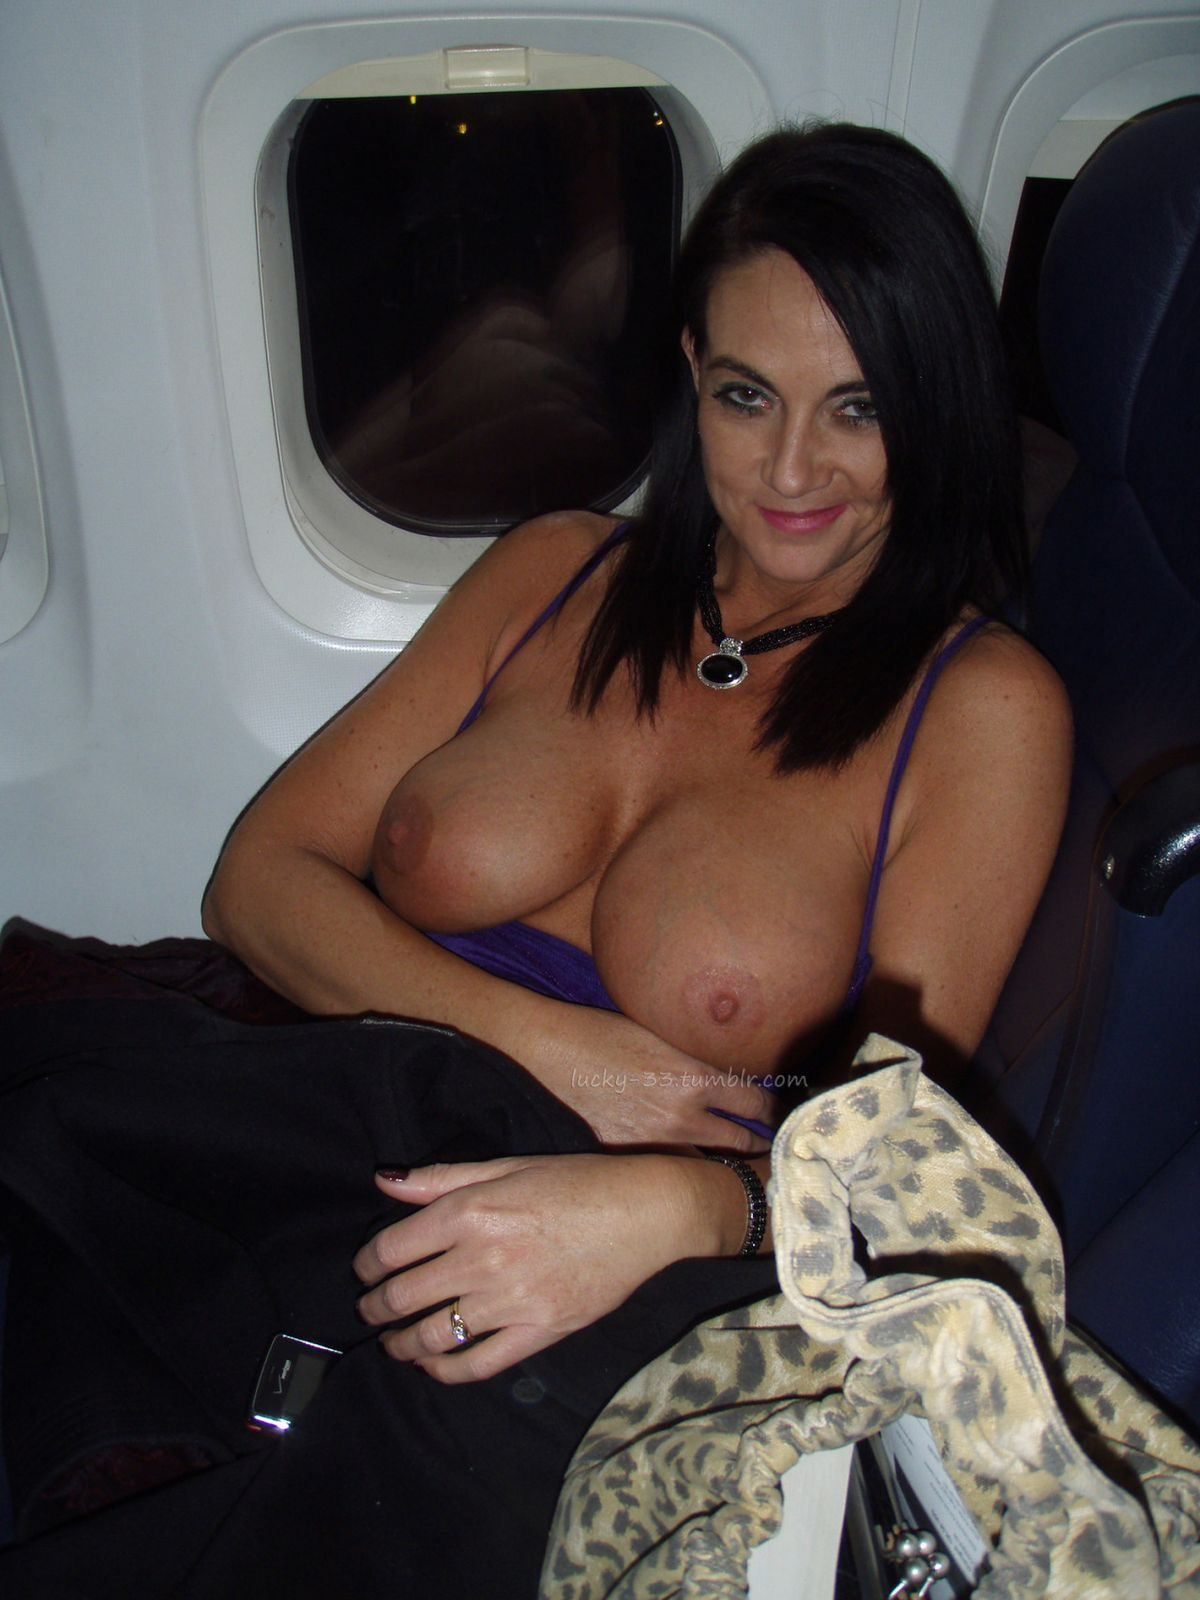 Topless On A Plane  Public  Pinterest  Boobs, Female -2057